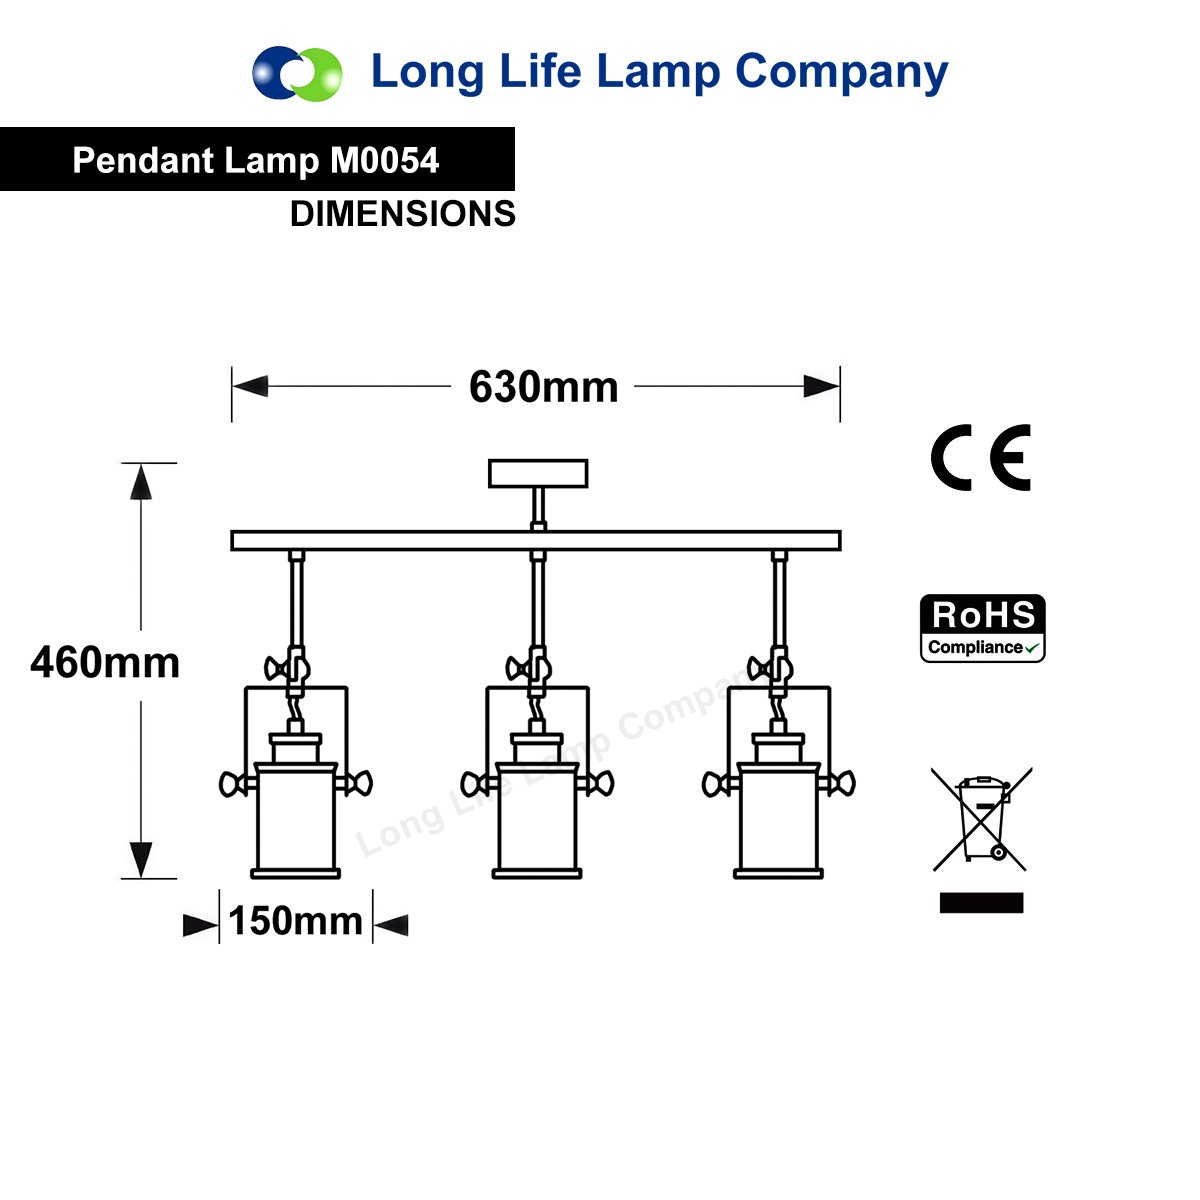 Energy Class A+ Industrial Retro GU10 Ceiling Spotlight Bar 3 Lamp Black Metal Adjustable Track Light Fitting M0054 Long Life Lamp Company